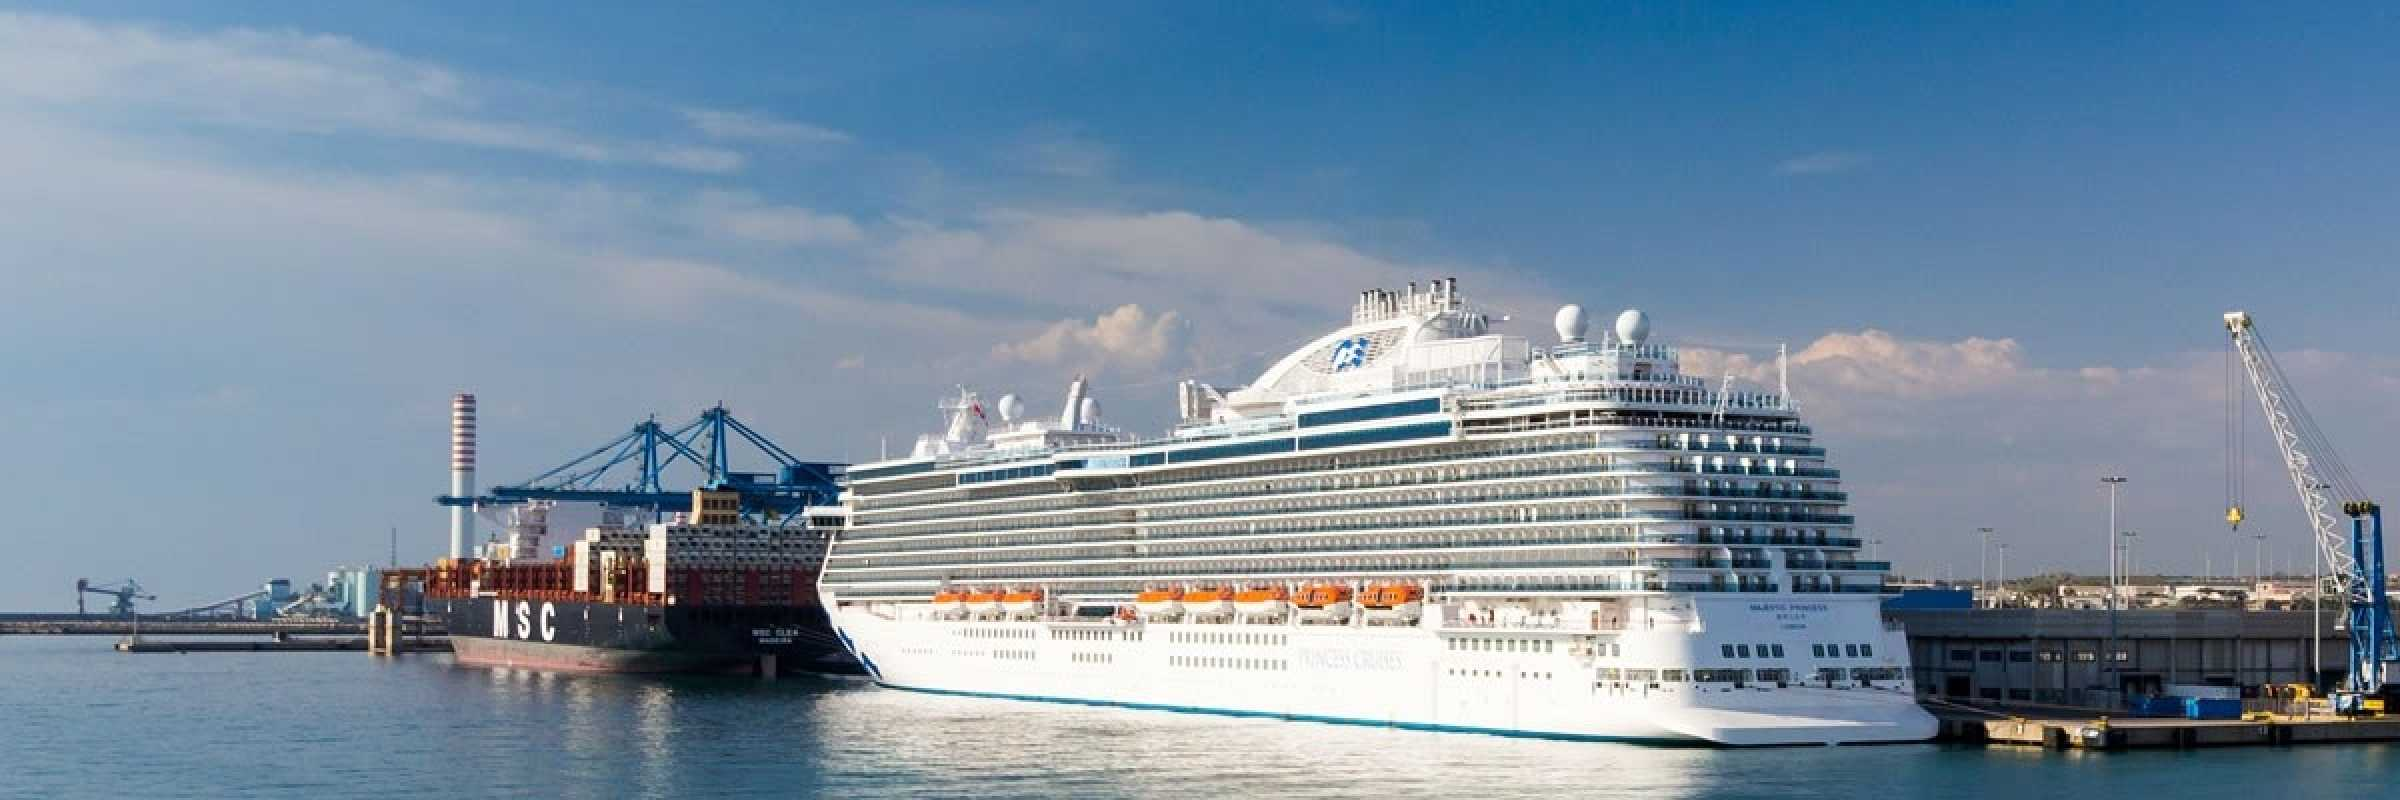 Fincantieri to build two next-generation LNG-powered 175,000gt ships for Carnival